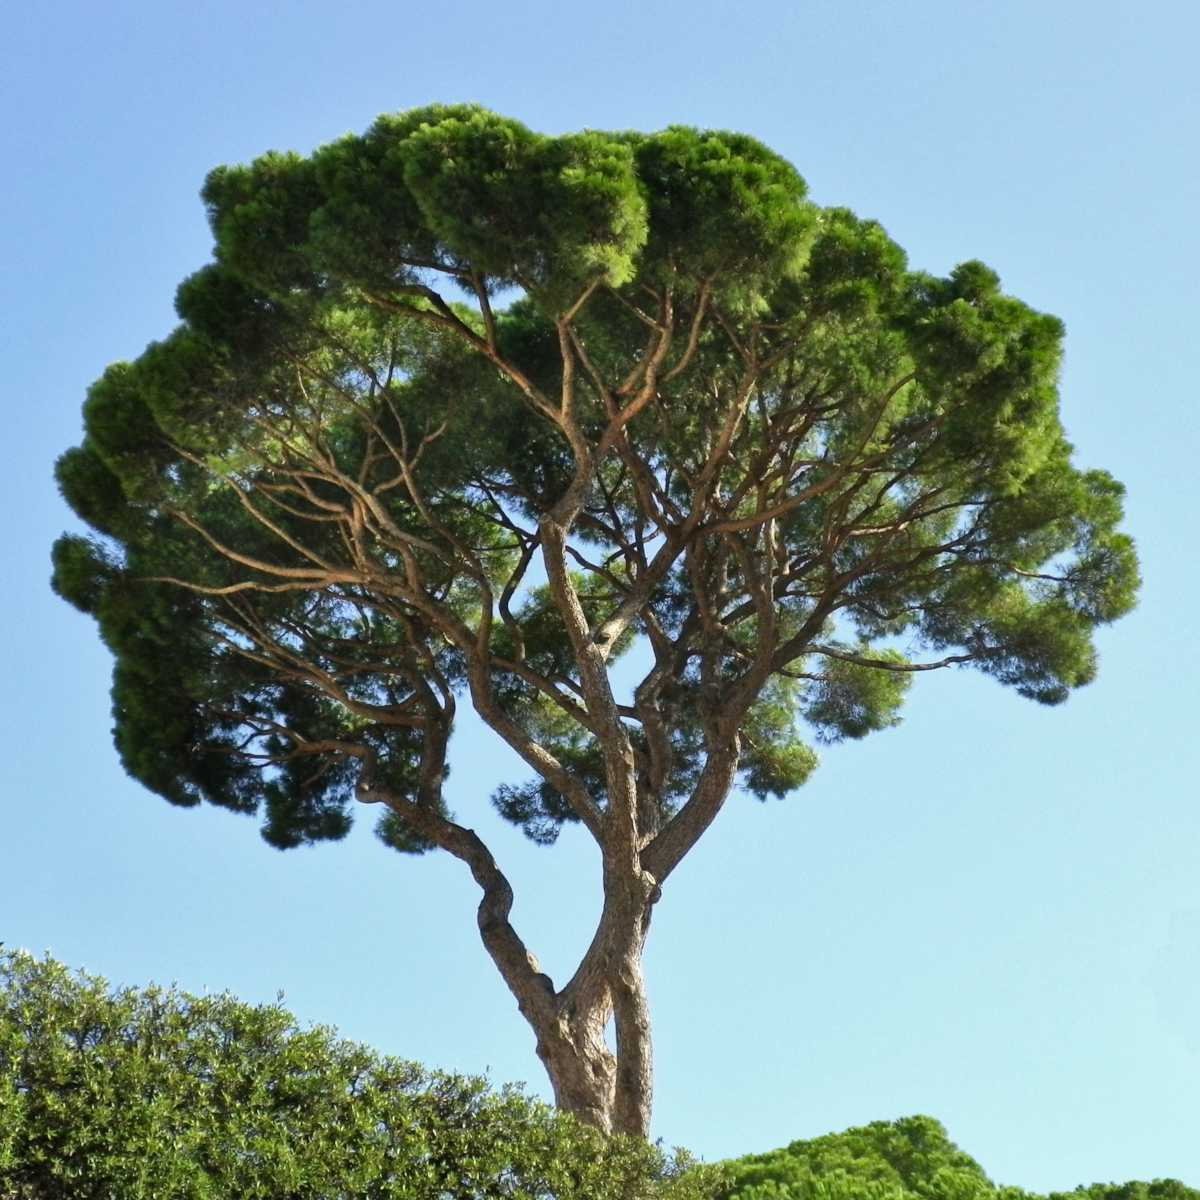 Stone pine, a majestic conifer